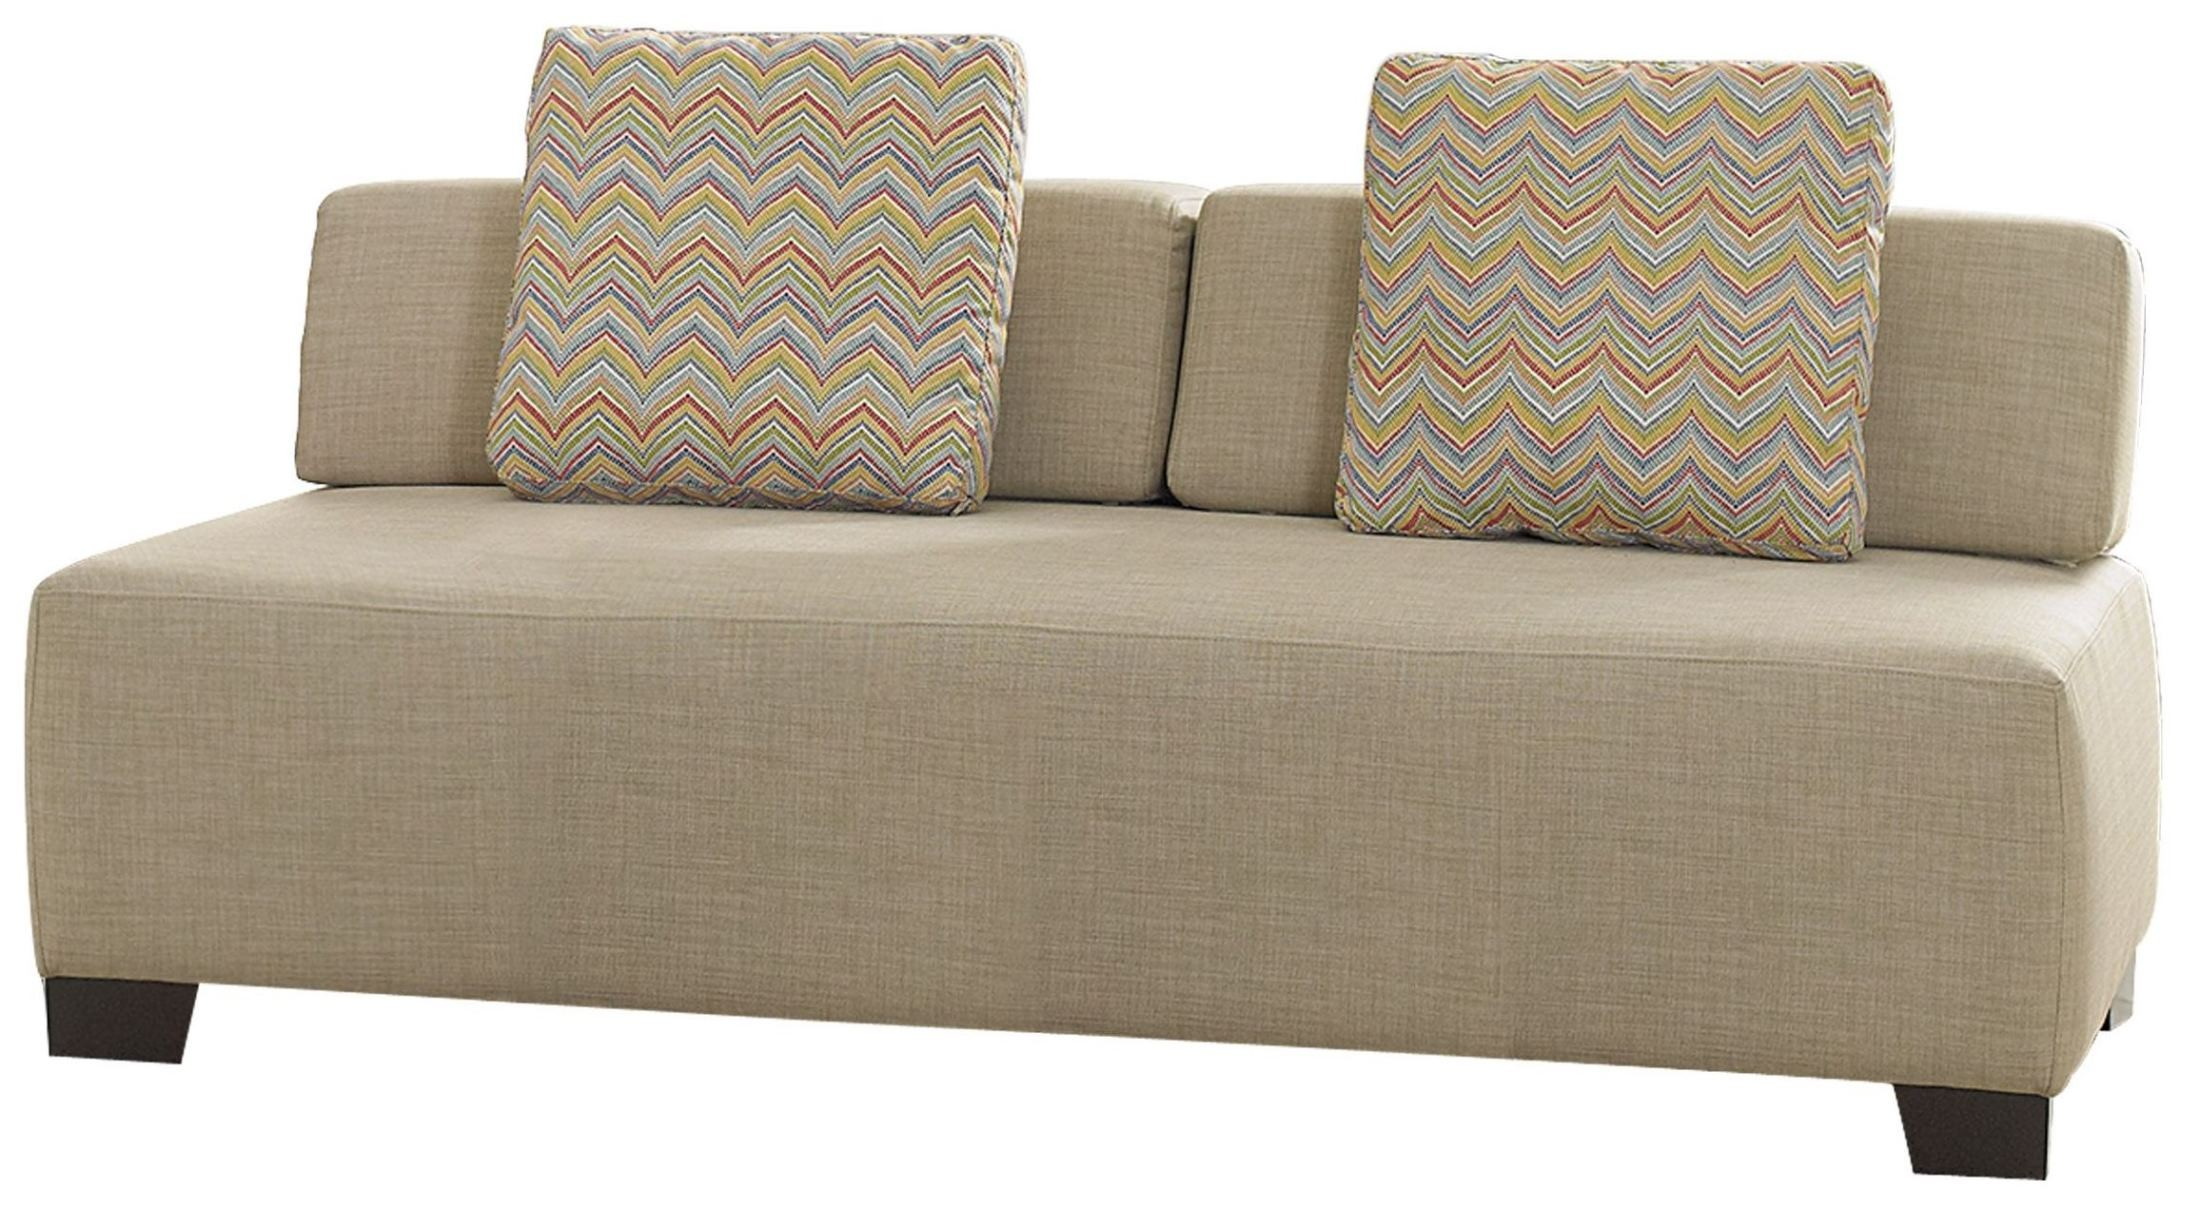 Darby Sofa From Homelegance 8507be 3 Coleman Furniture